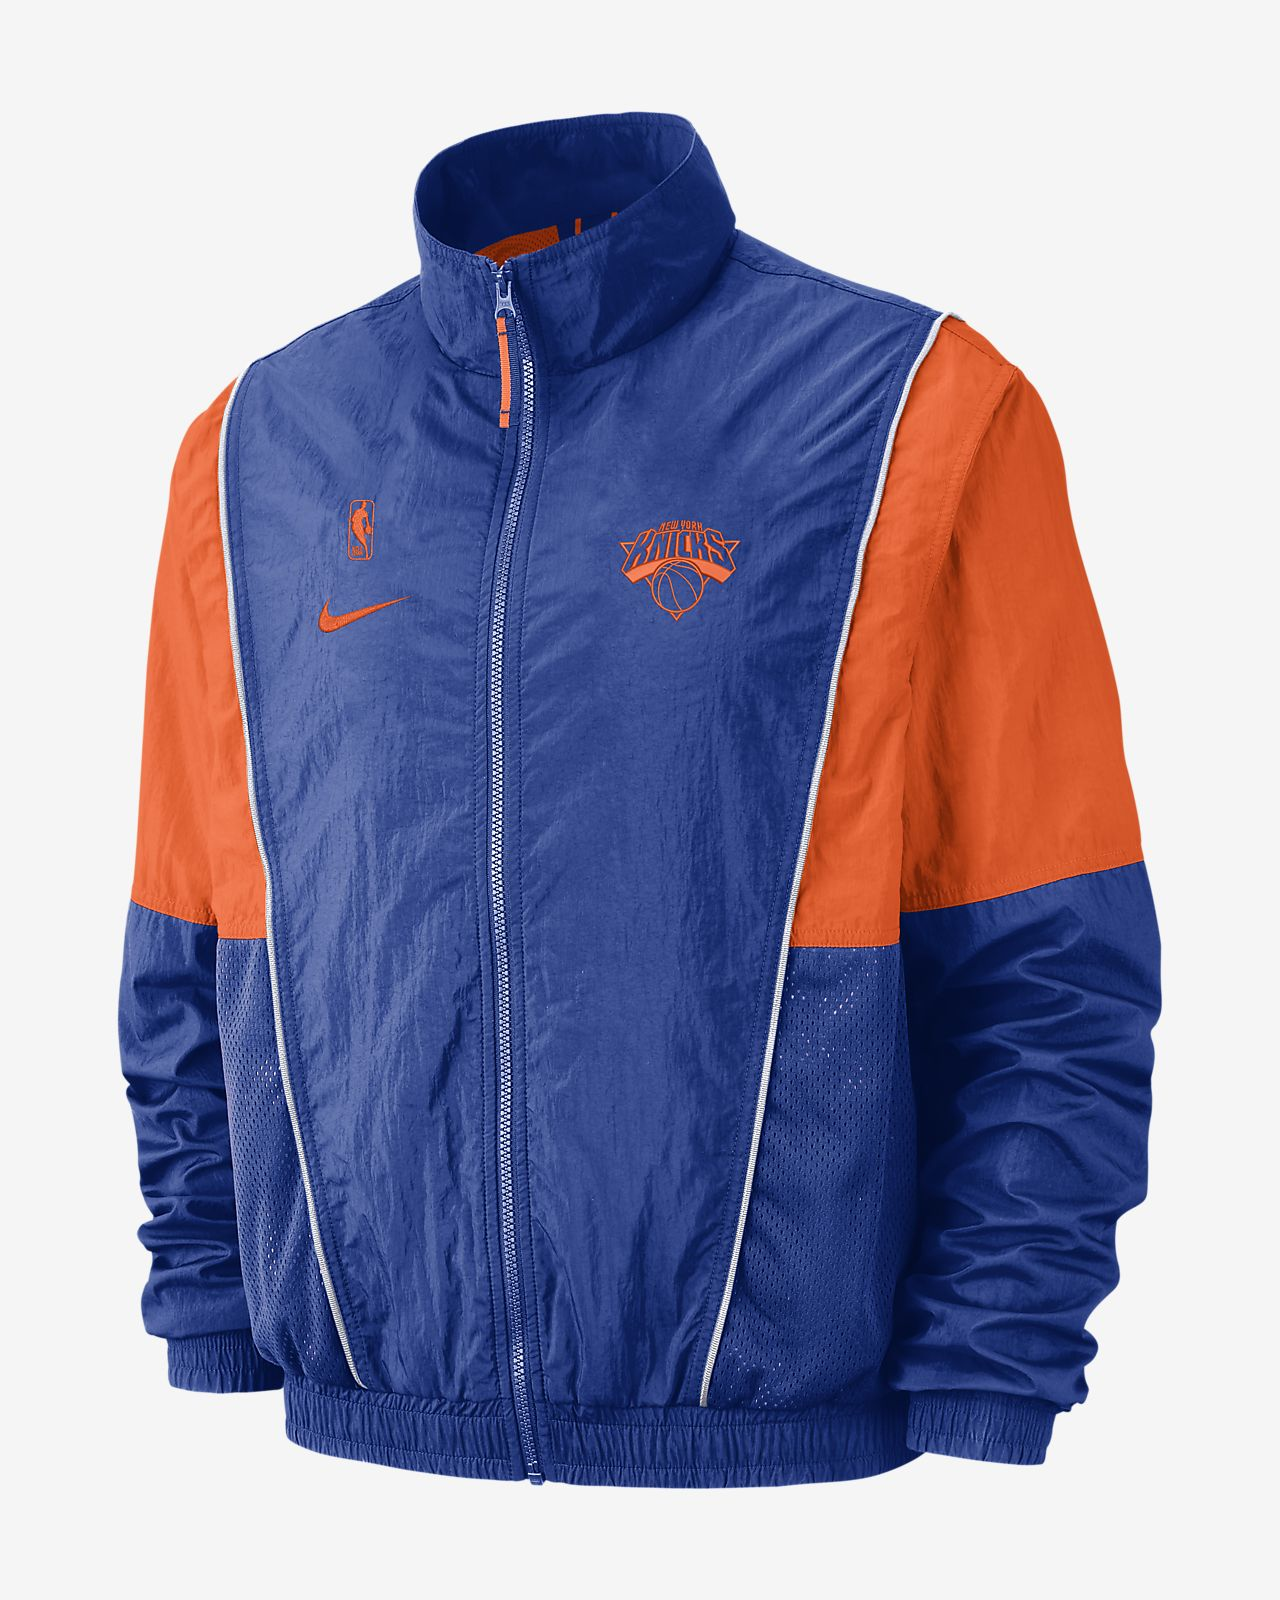 aa6efaf8d533 New York Knicks Nike Men s NBA Tracksuit Jacket. Nike.com